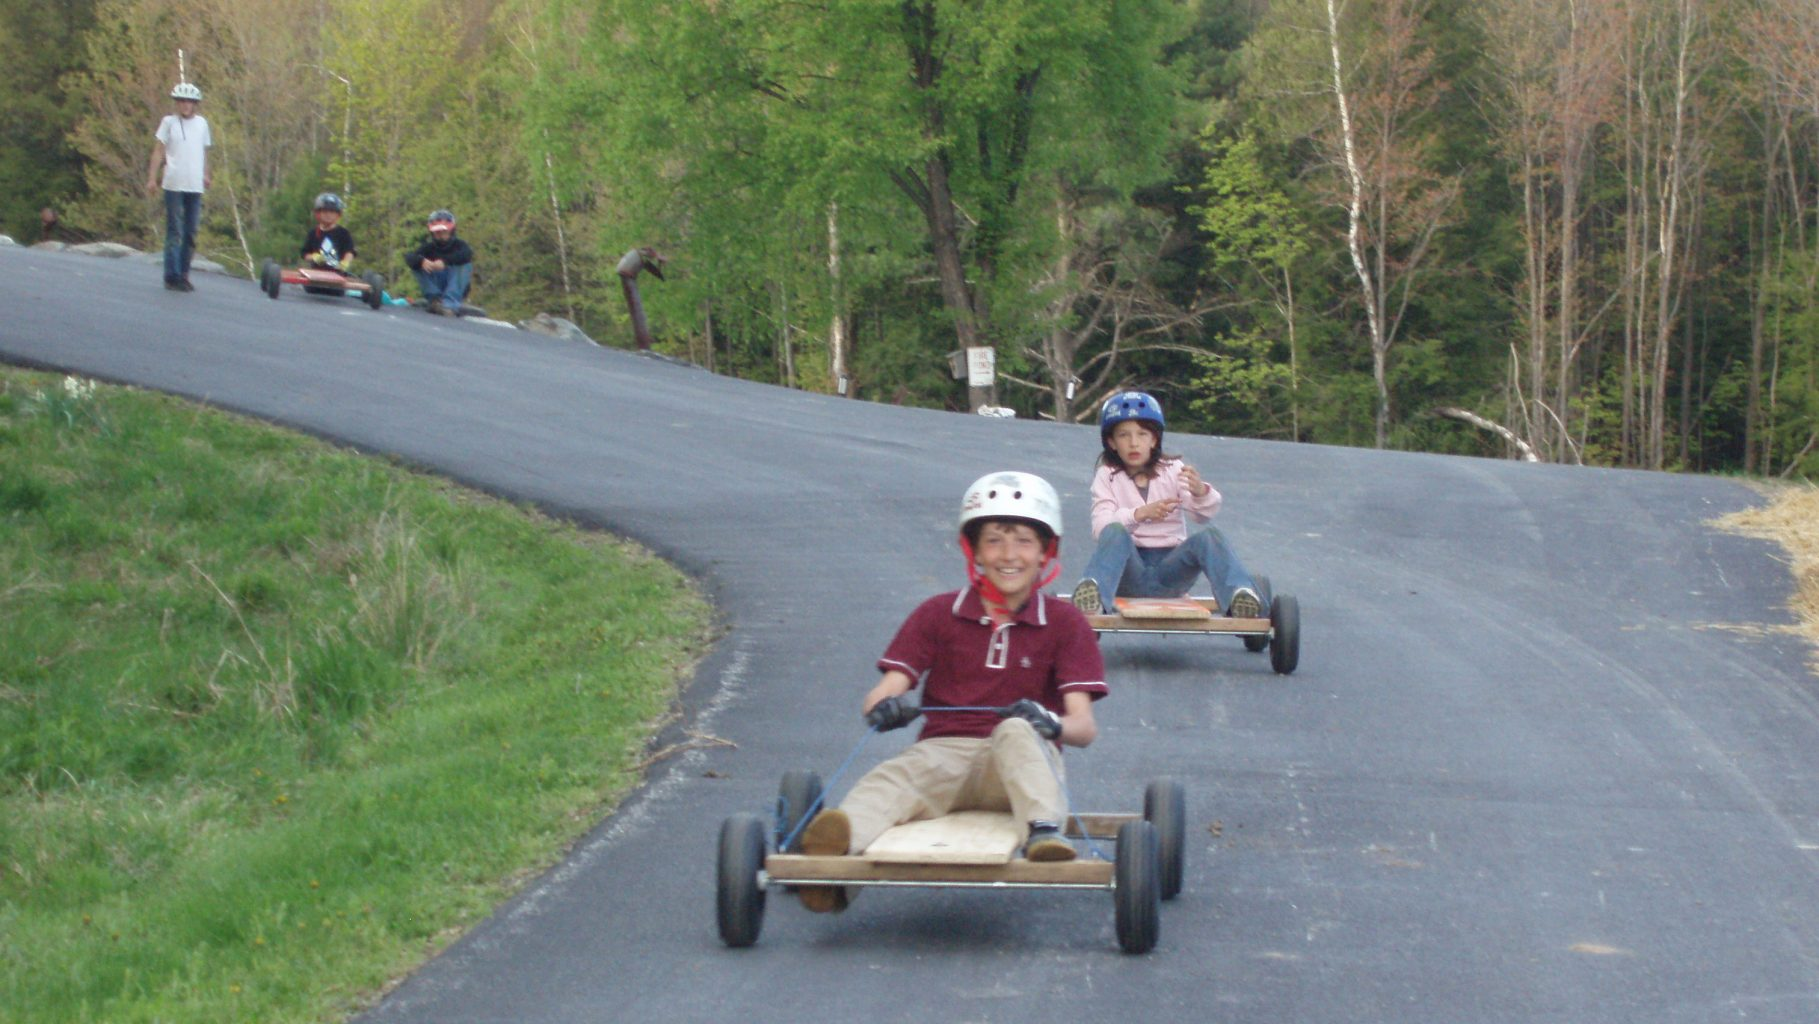 Image: Kids laughing wildly while riding home-made go-carts